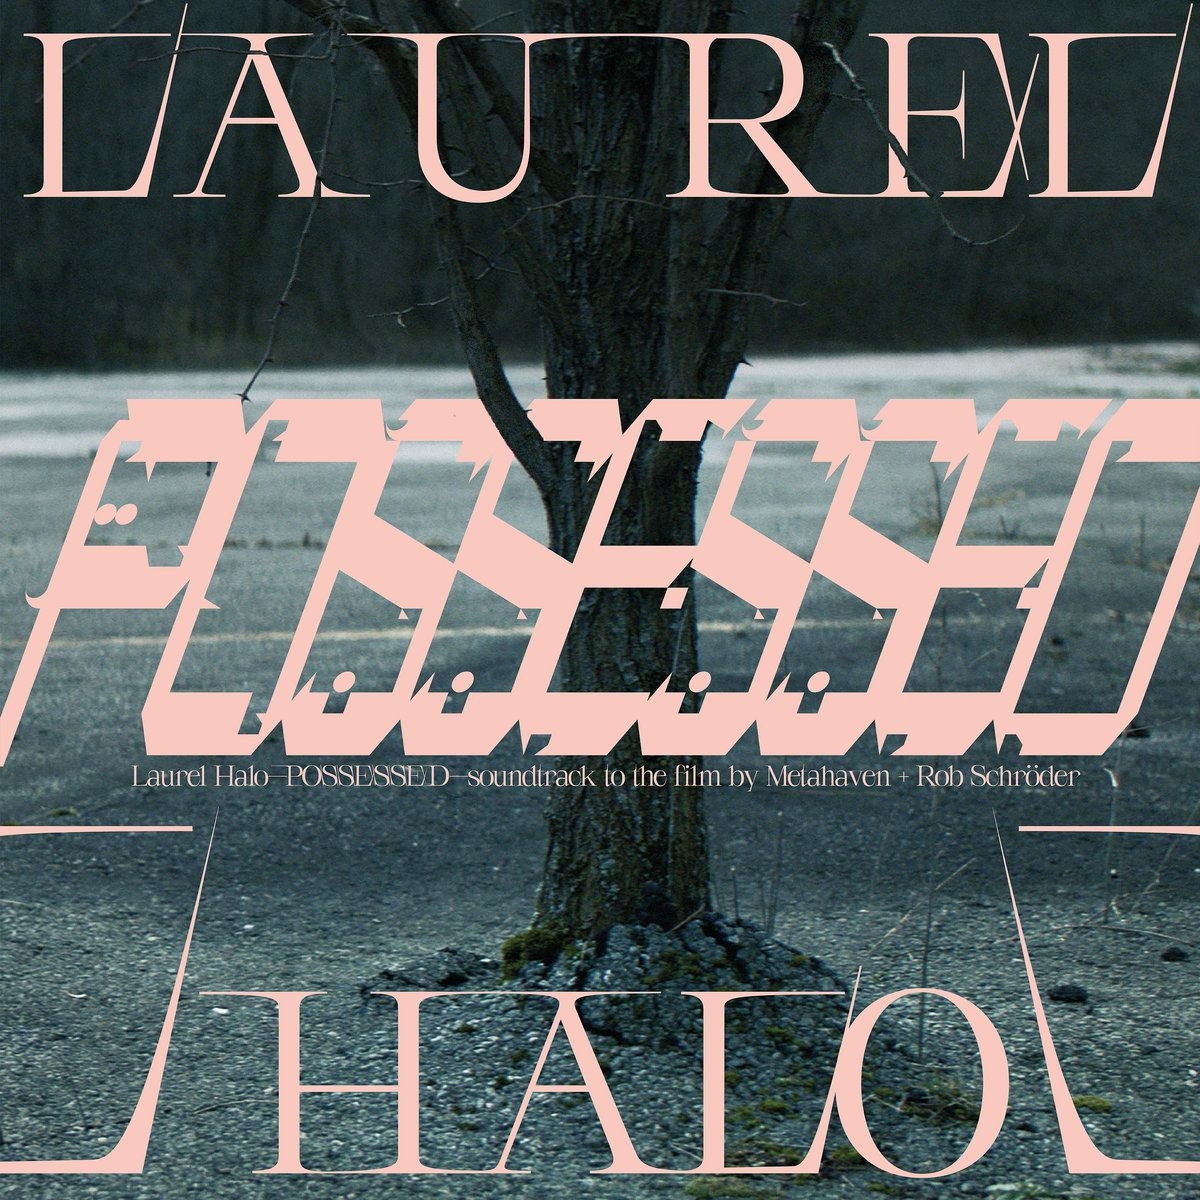 .@LaurelHalo's soundtrack is as hopeful as it is cautionary, and as tied to the ancient as it is the futuristic. #Possessed https://buff.ly/3ddJHdipic.twitter.com/IBIaGBMoxa